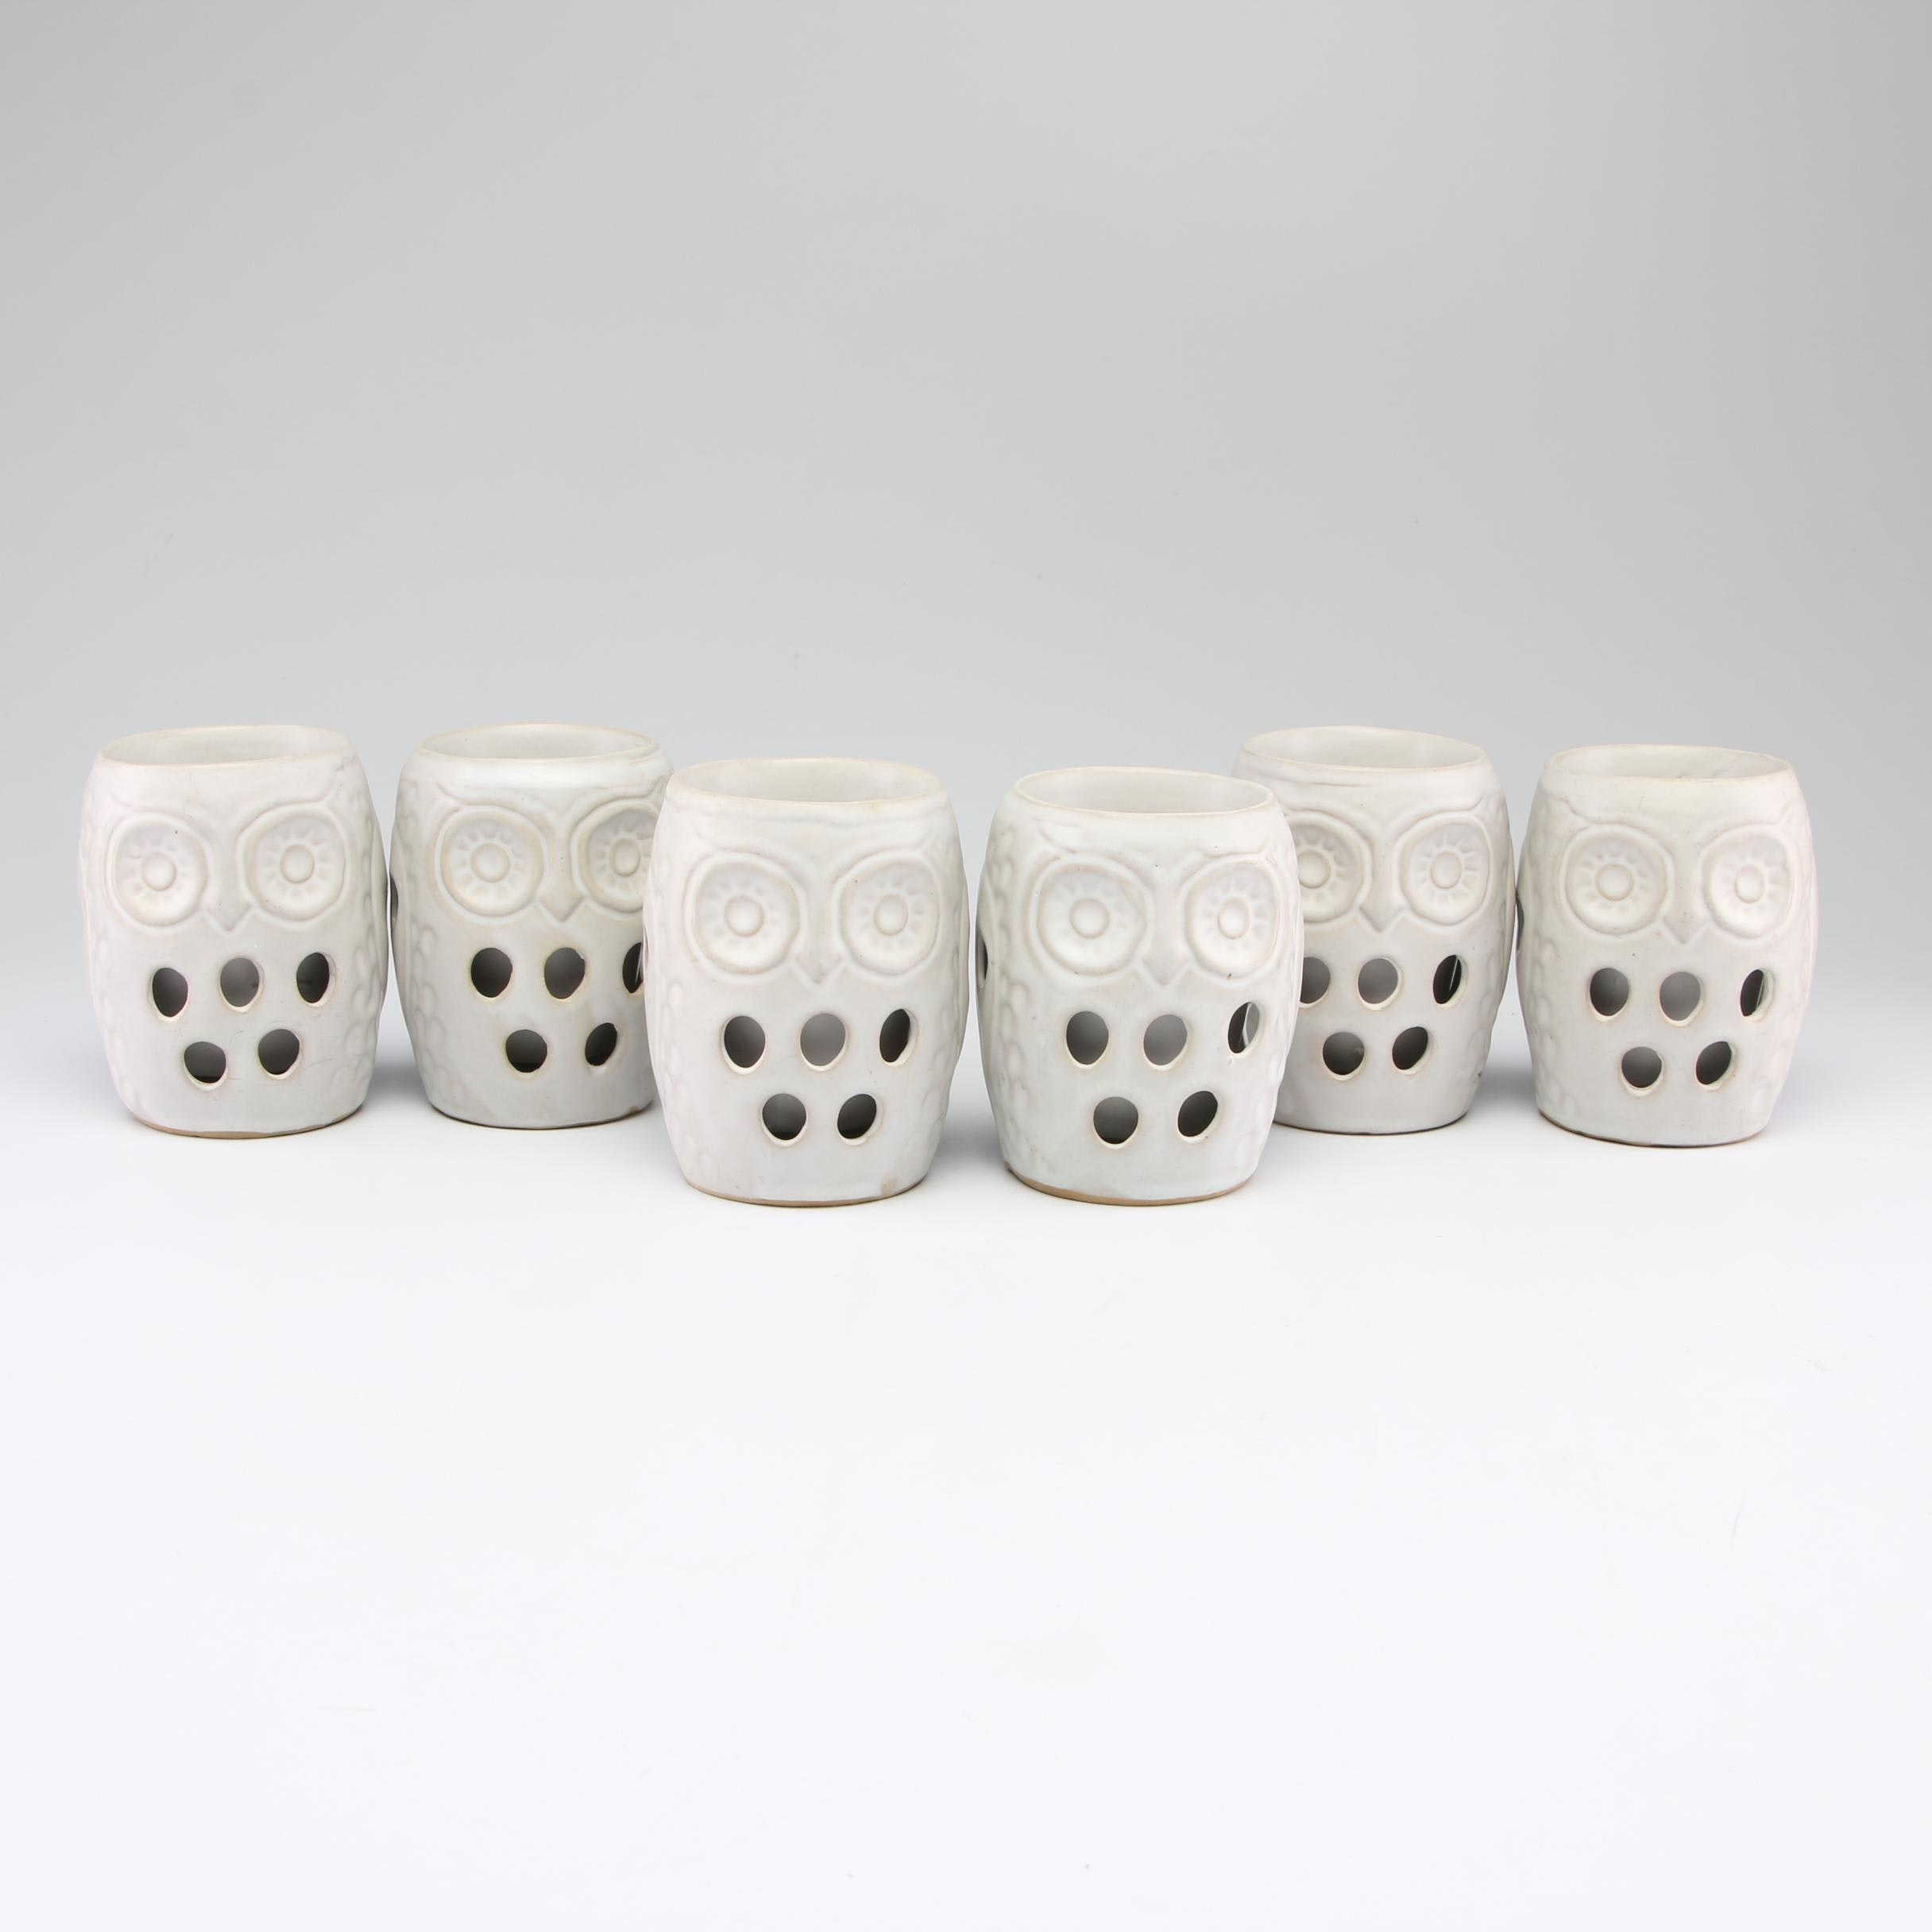 Thrown Double Walled Owl Form Stoneware Tumblers